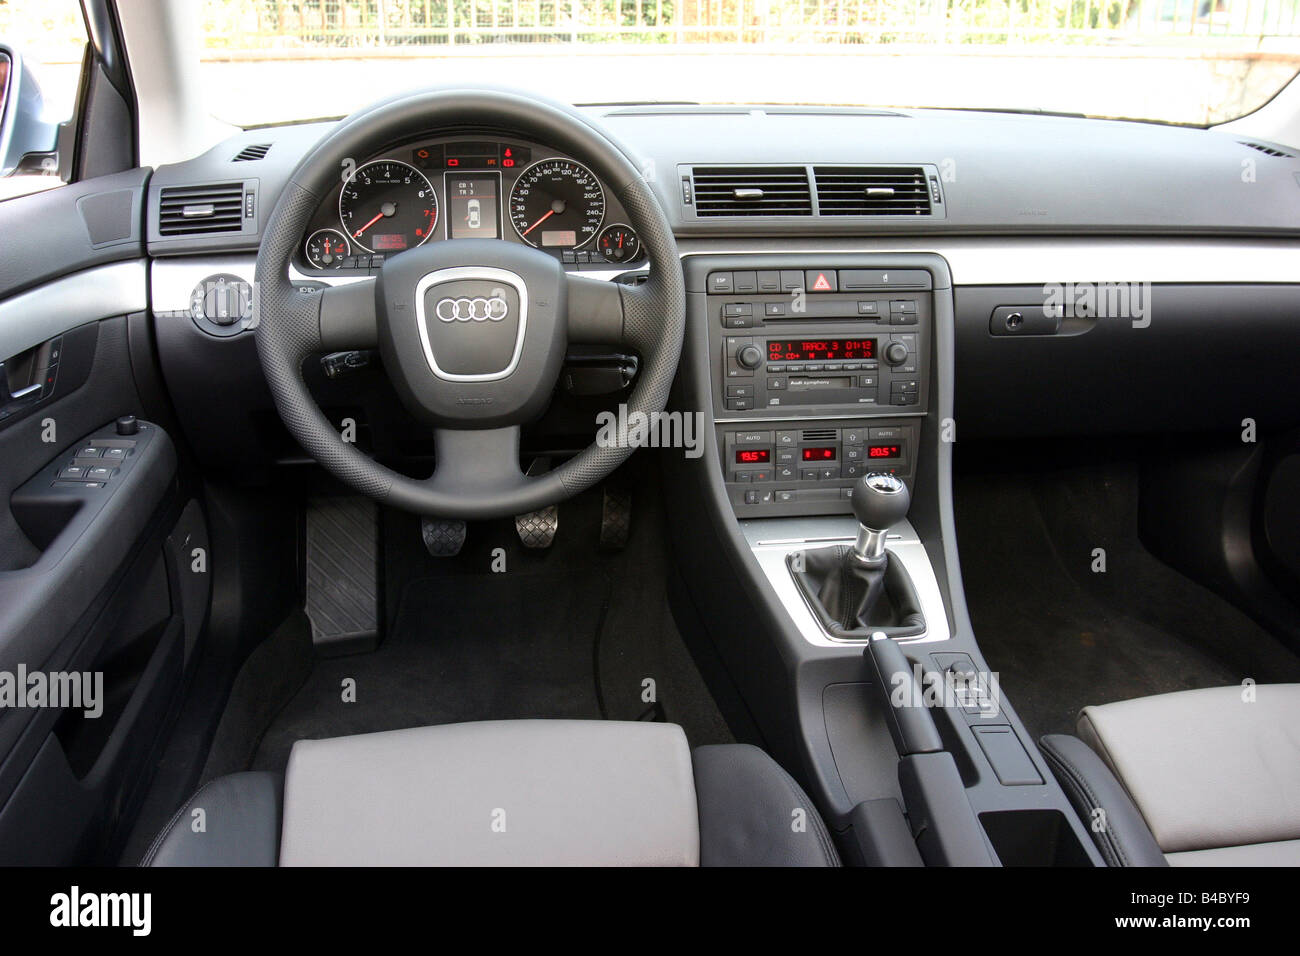 Car, Audi A4 2.0 FSI, Facelift, Model Year 2004 , Silver Blue, Limousine,  Medium Class, Interior View, Interior View, Cockpit, T